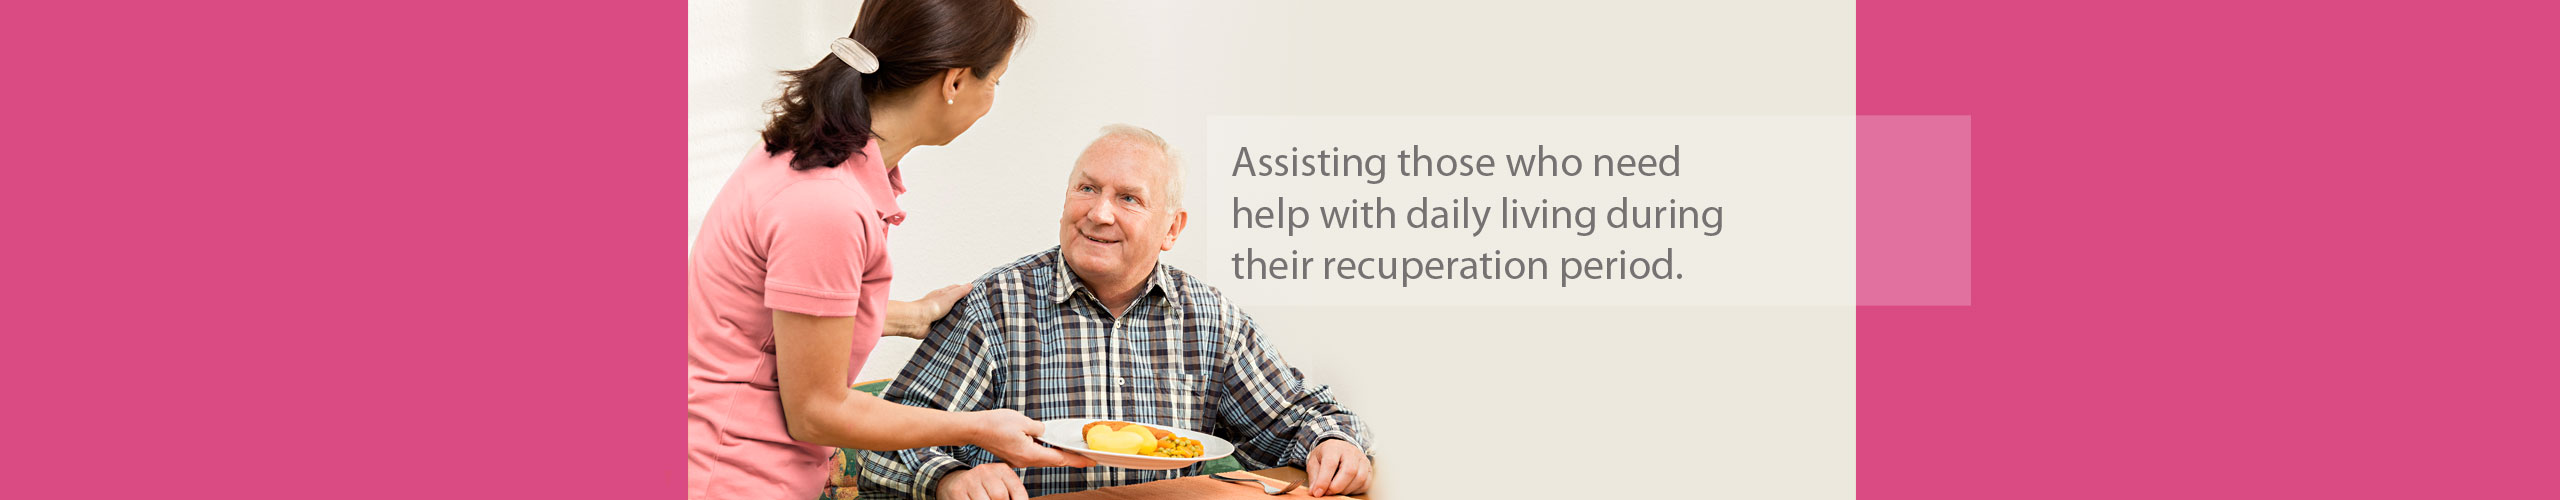 Assisting those who need help with daily living during their recuperation period